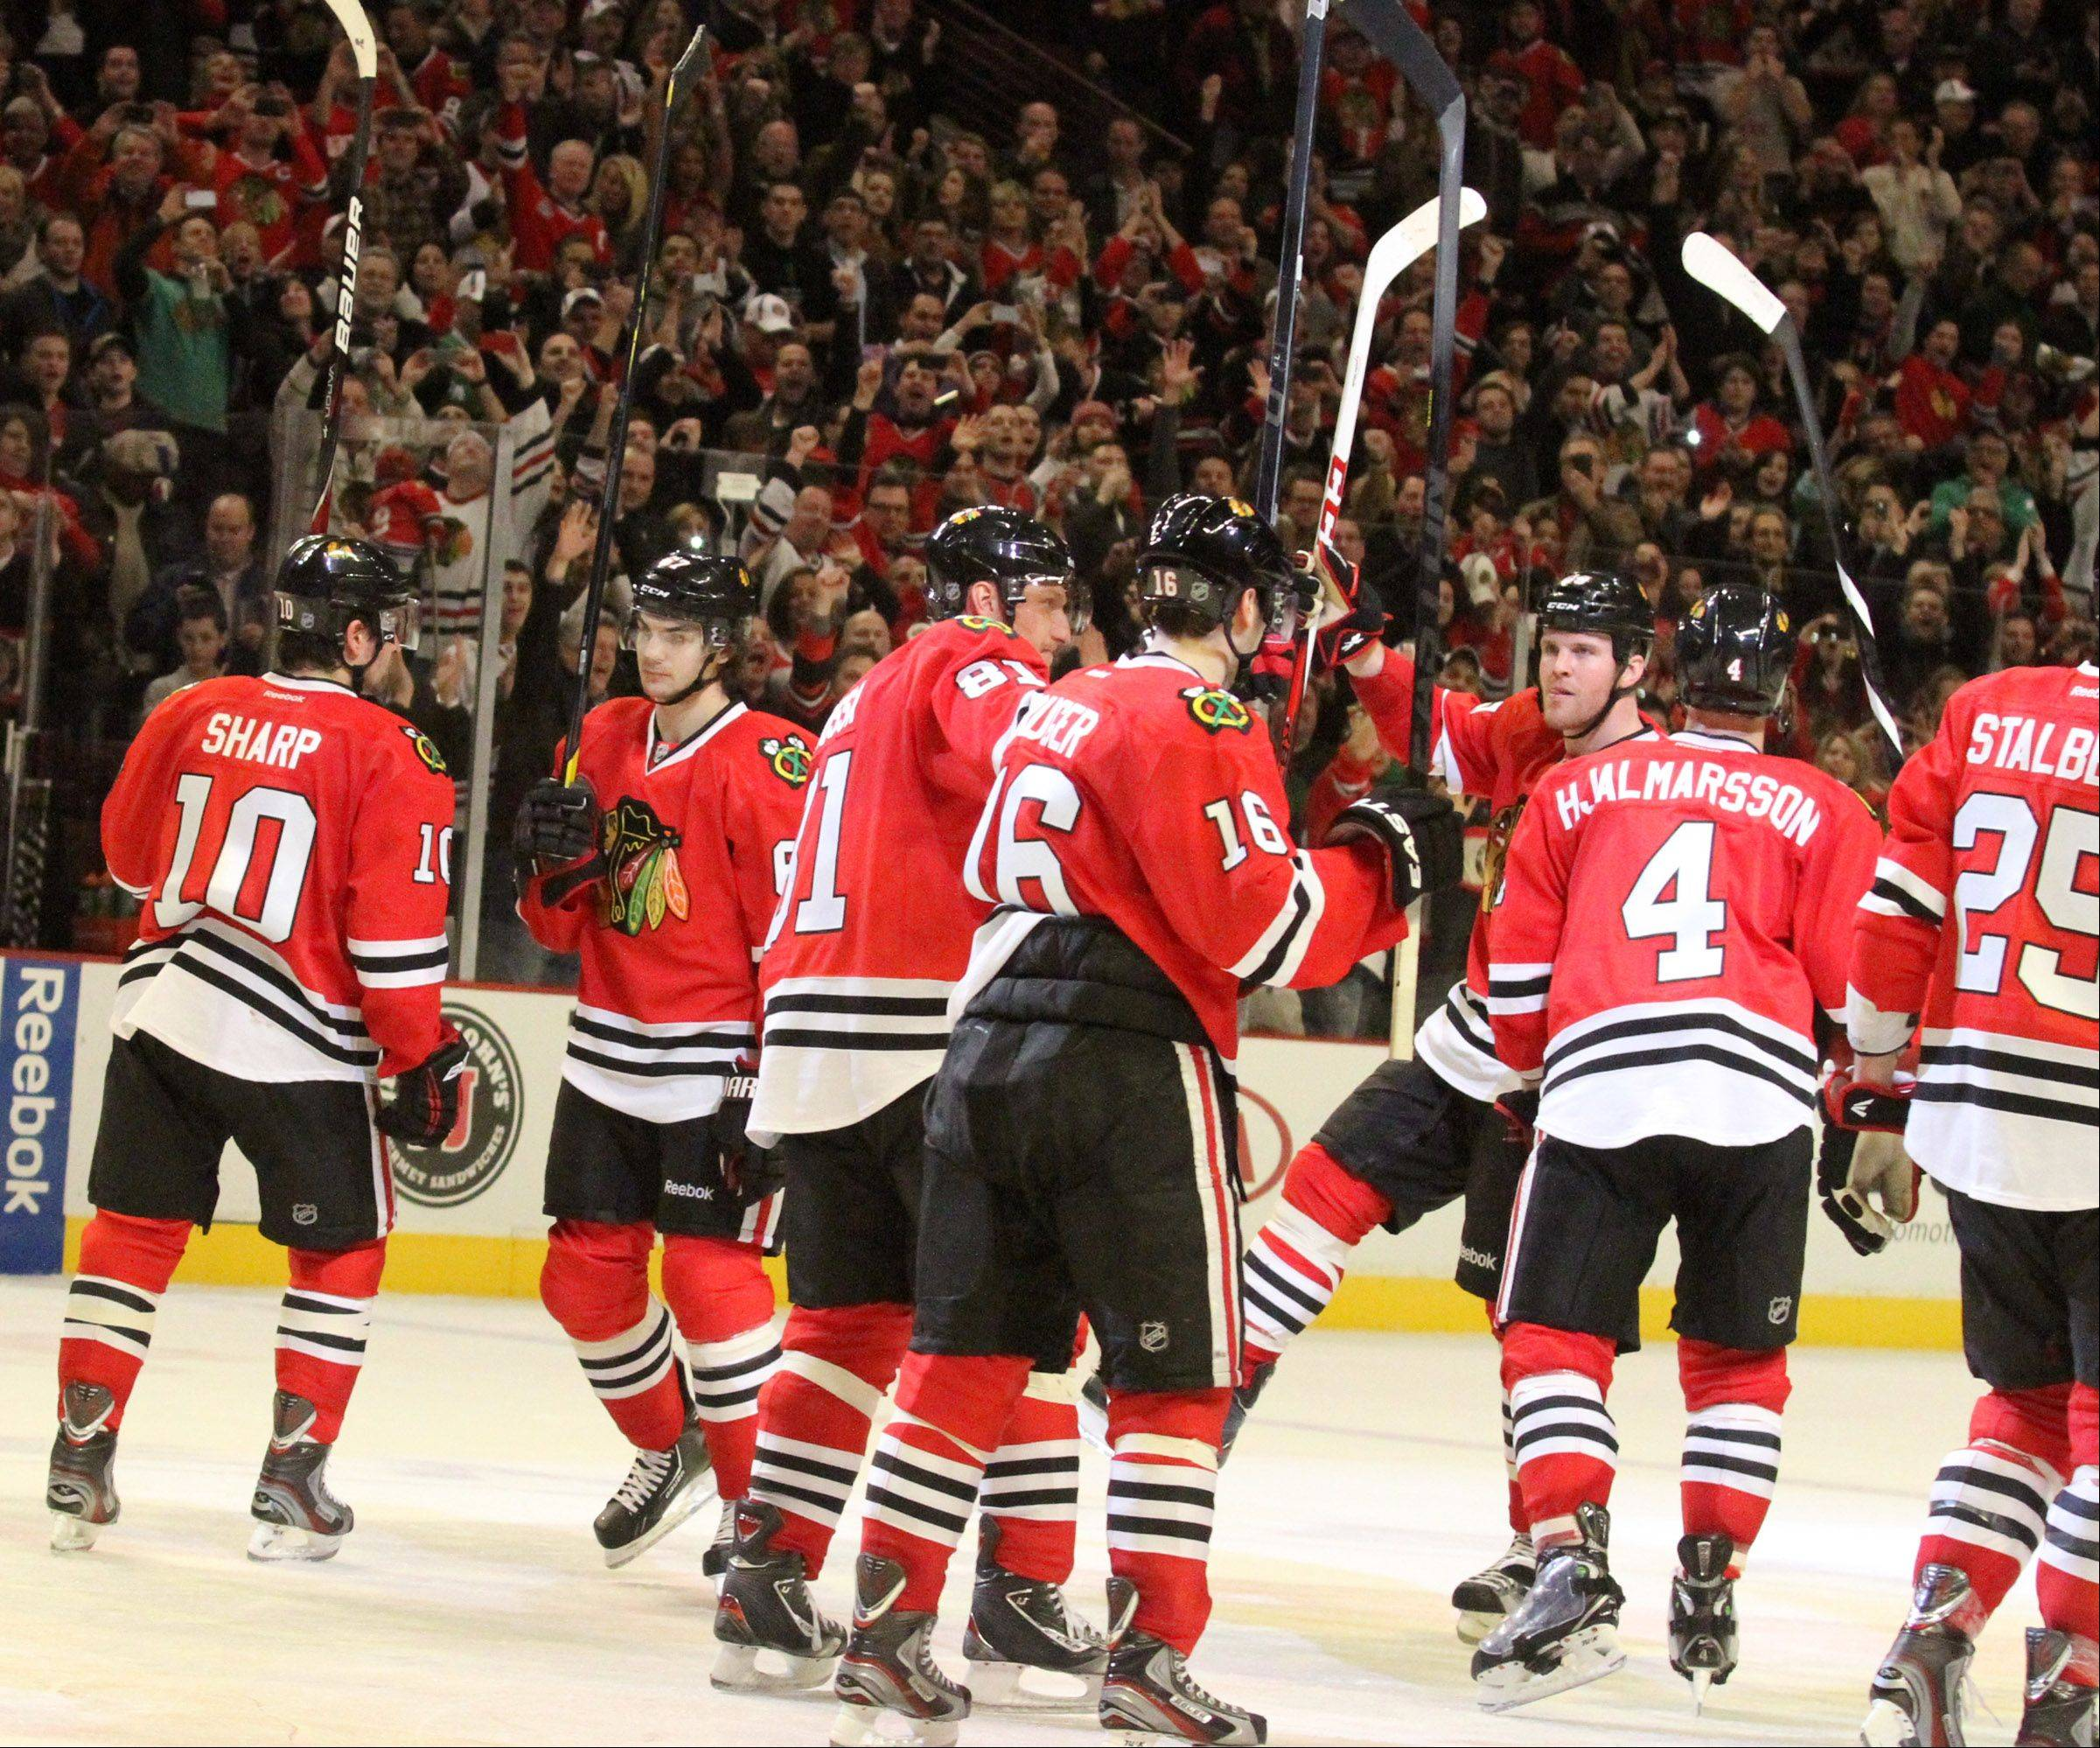 The Chicago Blackhawks raise their sticks after the record-setting win.